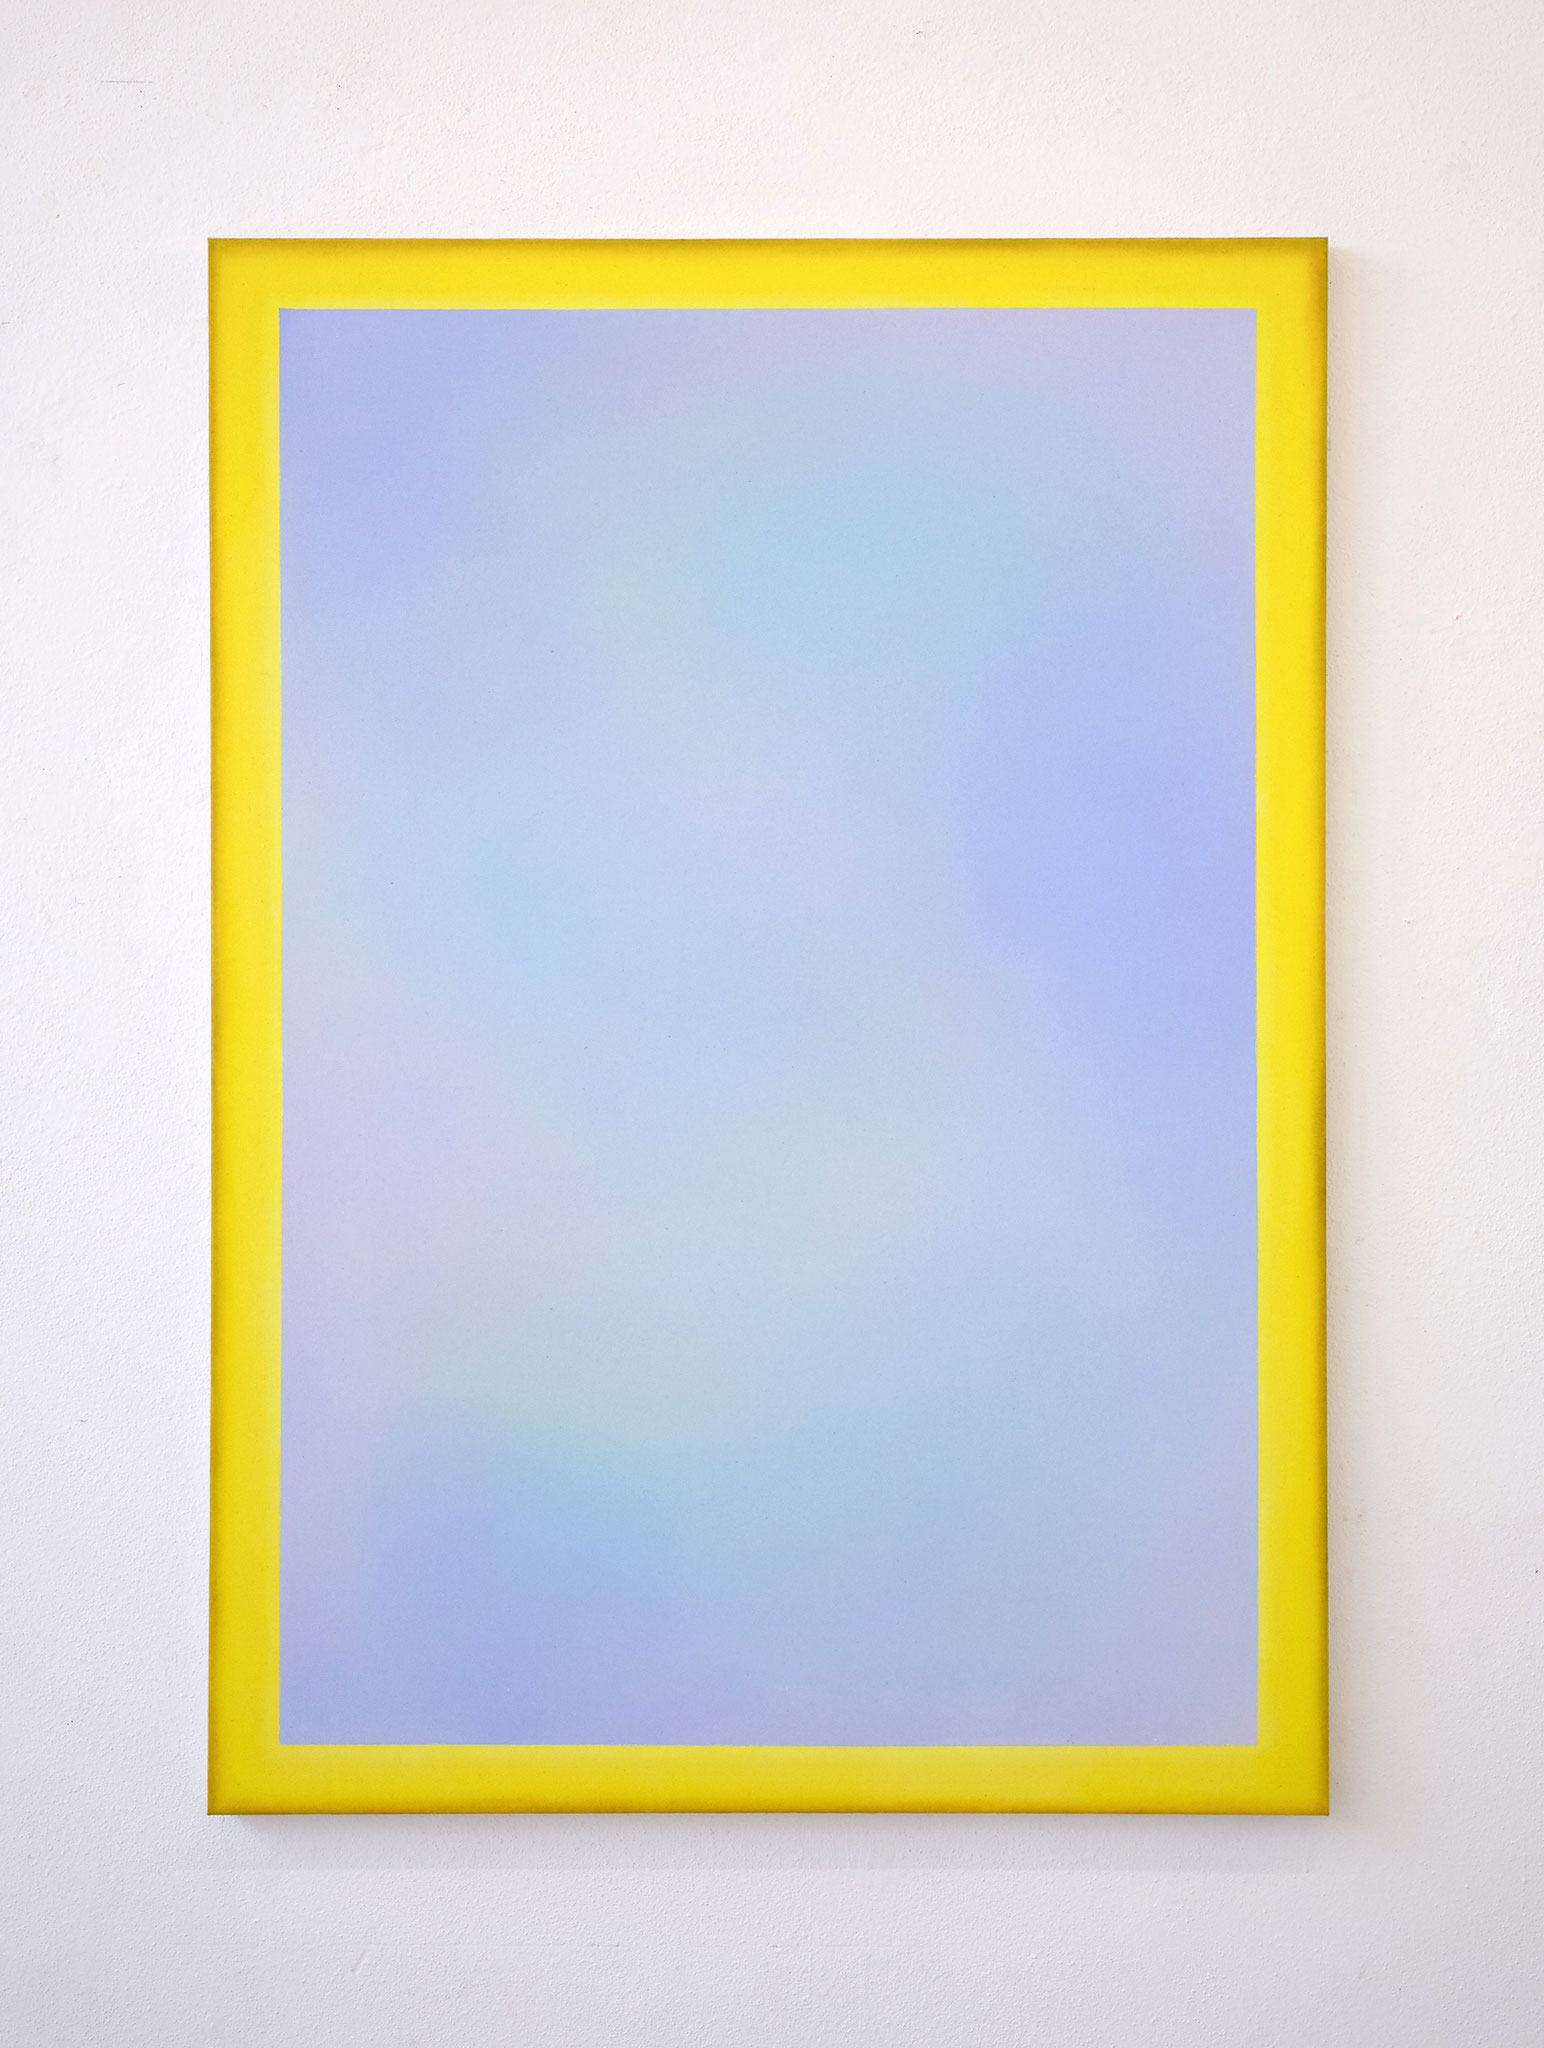 "Alina Birkner ""Untitled (Yellow Frame)"" 2019, 170x120 cm, Acrylic on Canvas"